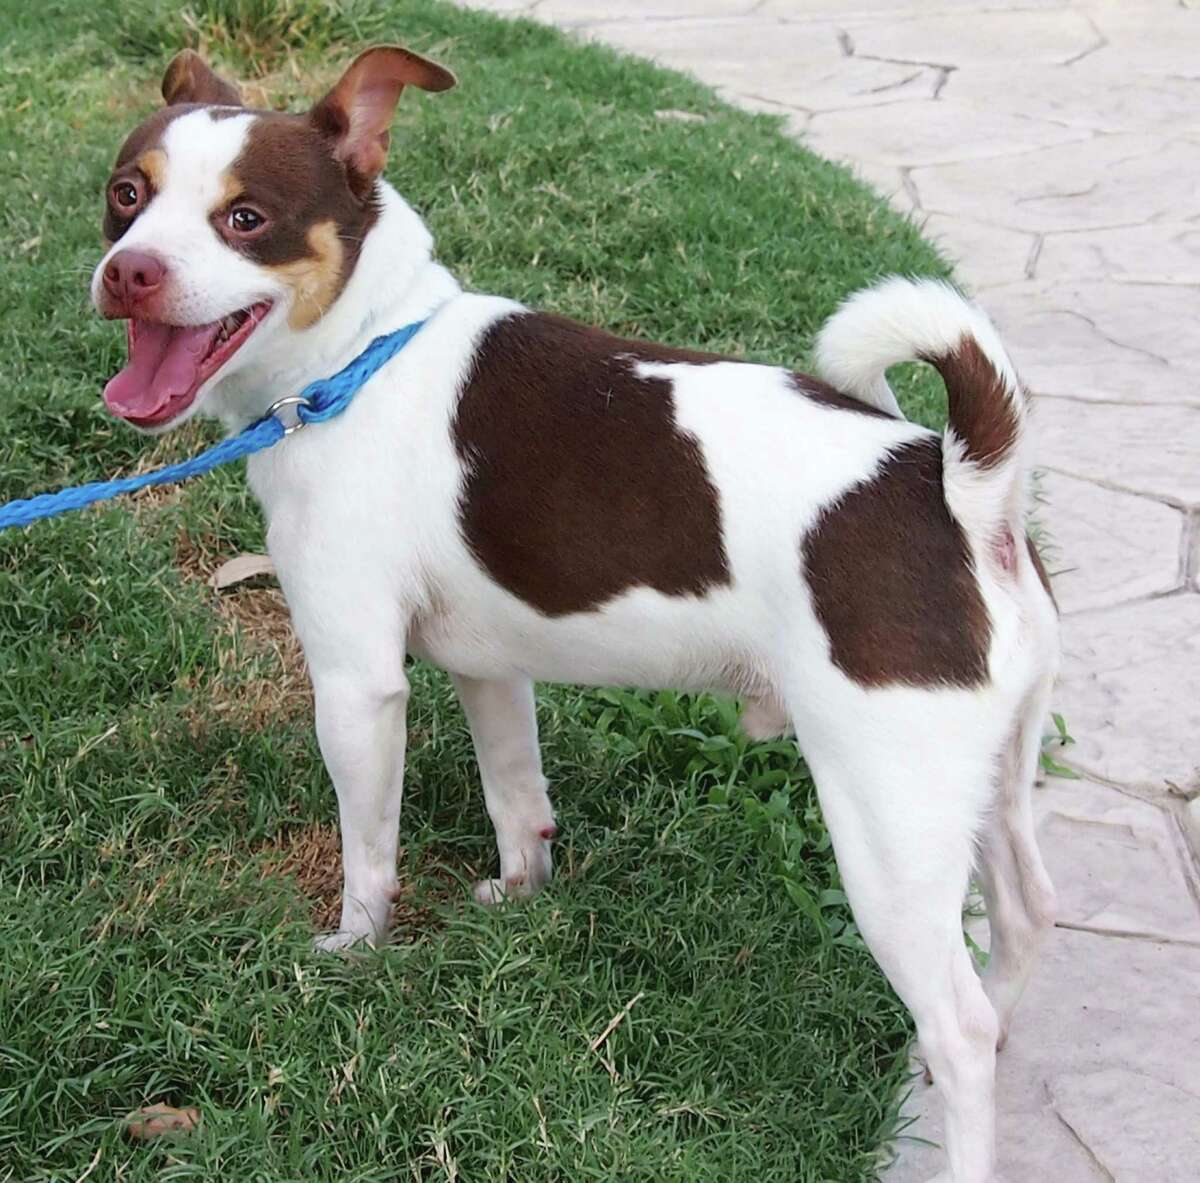 Freddie, a 1-year-old Boston Terrier / Miniature Pinscher, will be available for adoption at 11 a.m. Friday at Citizens for Animal Protection, 17555 I-10 W. More information: cap4pets.org or 281-497-0591.